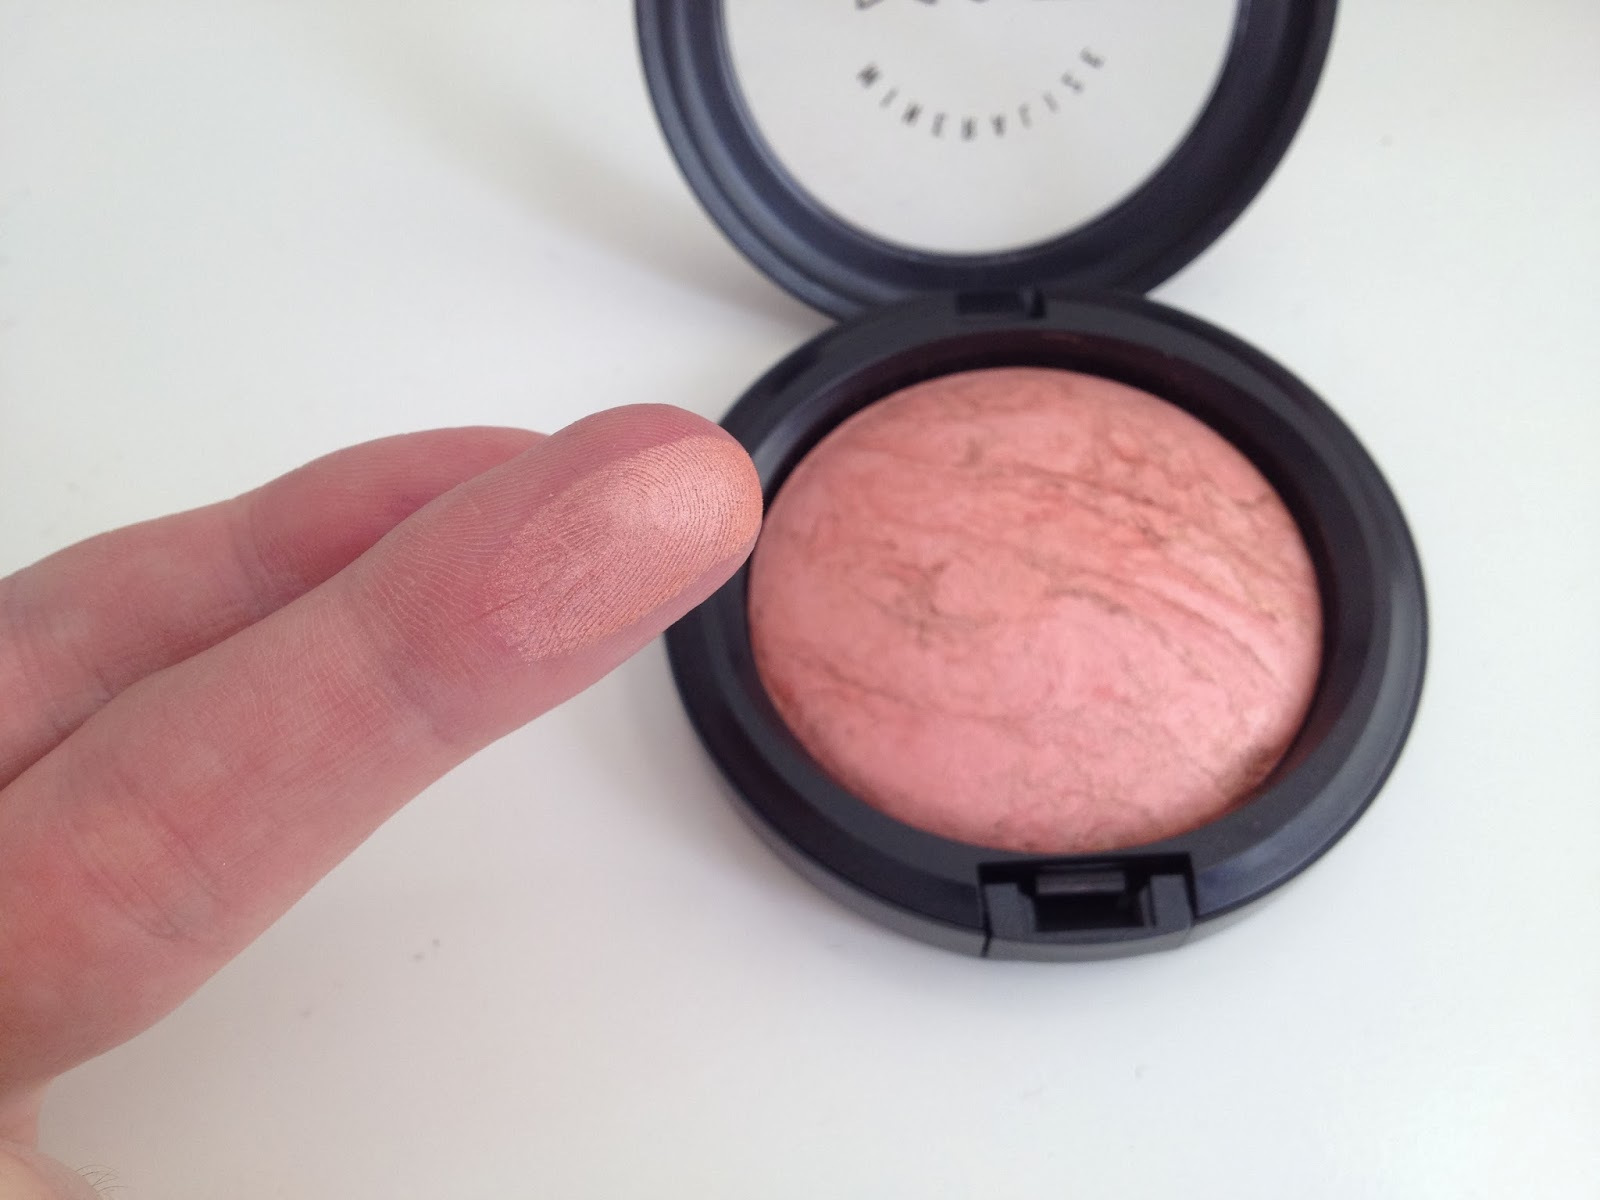 MAC Mineralize Skinfinish in Stereo Rose swatch